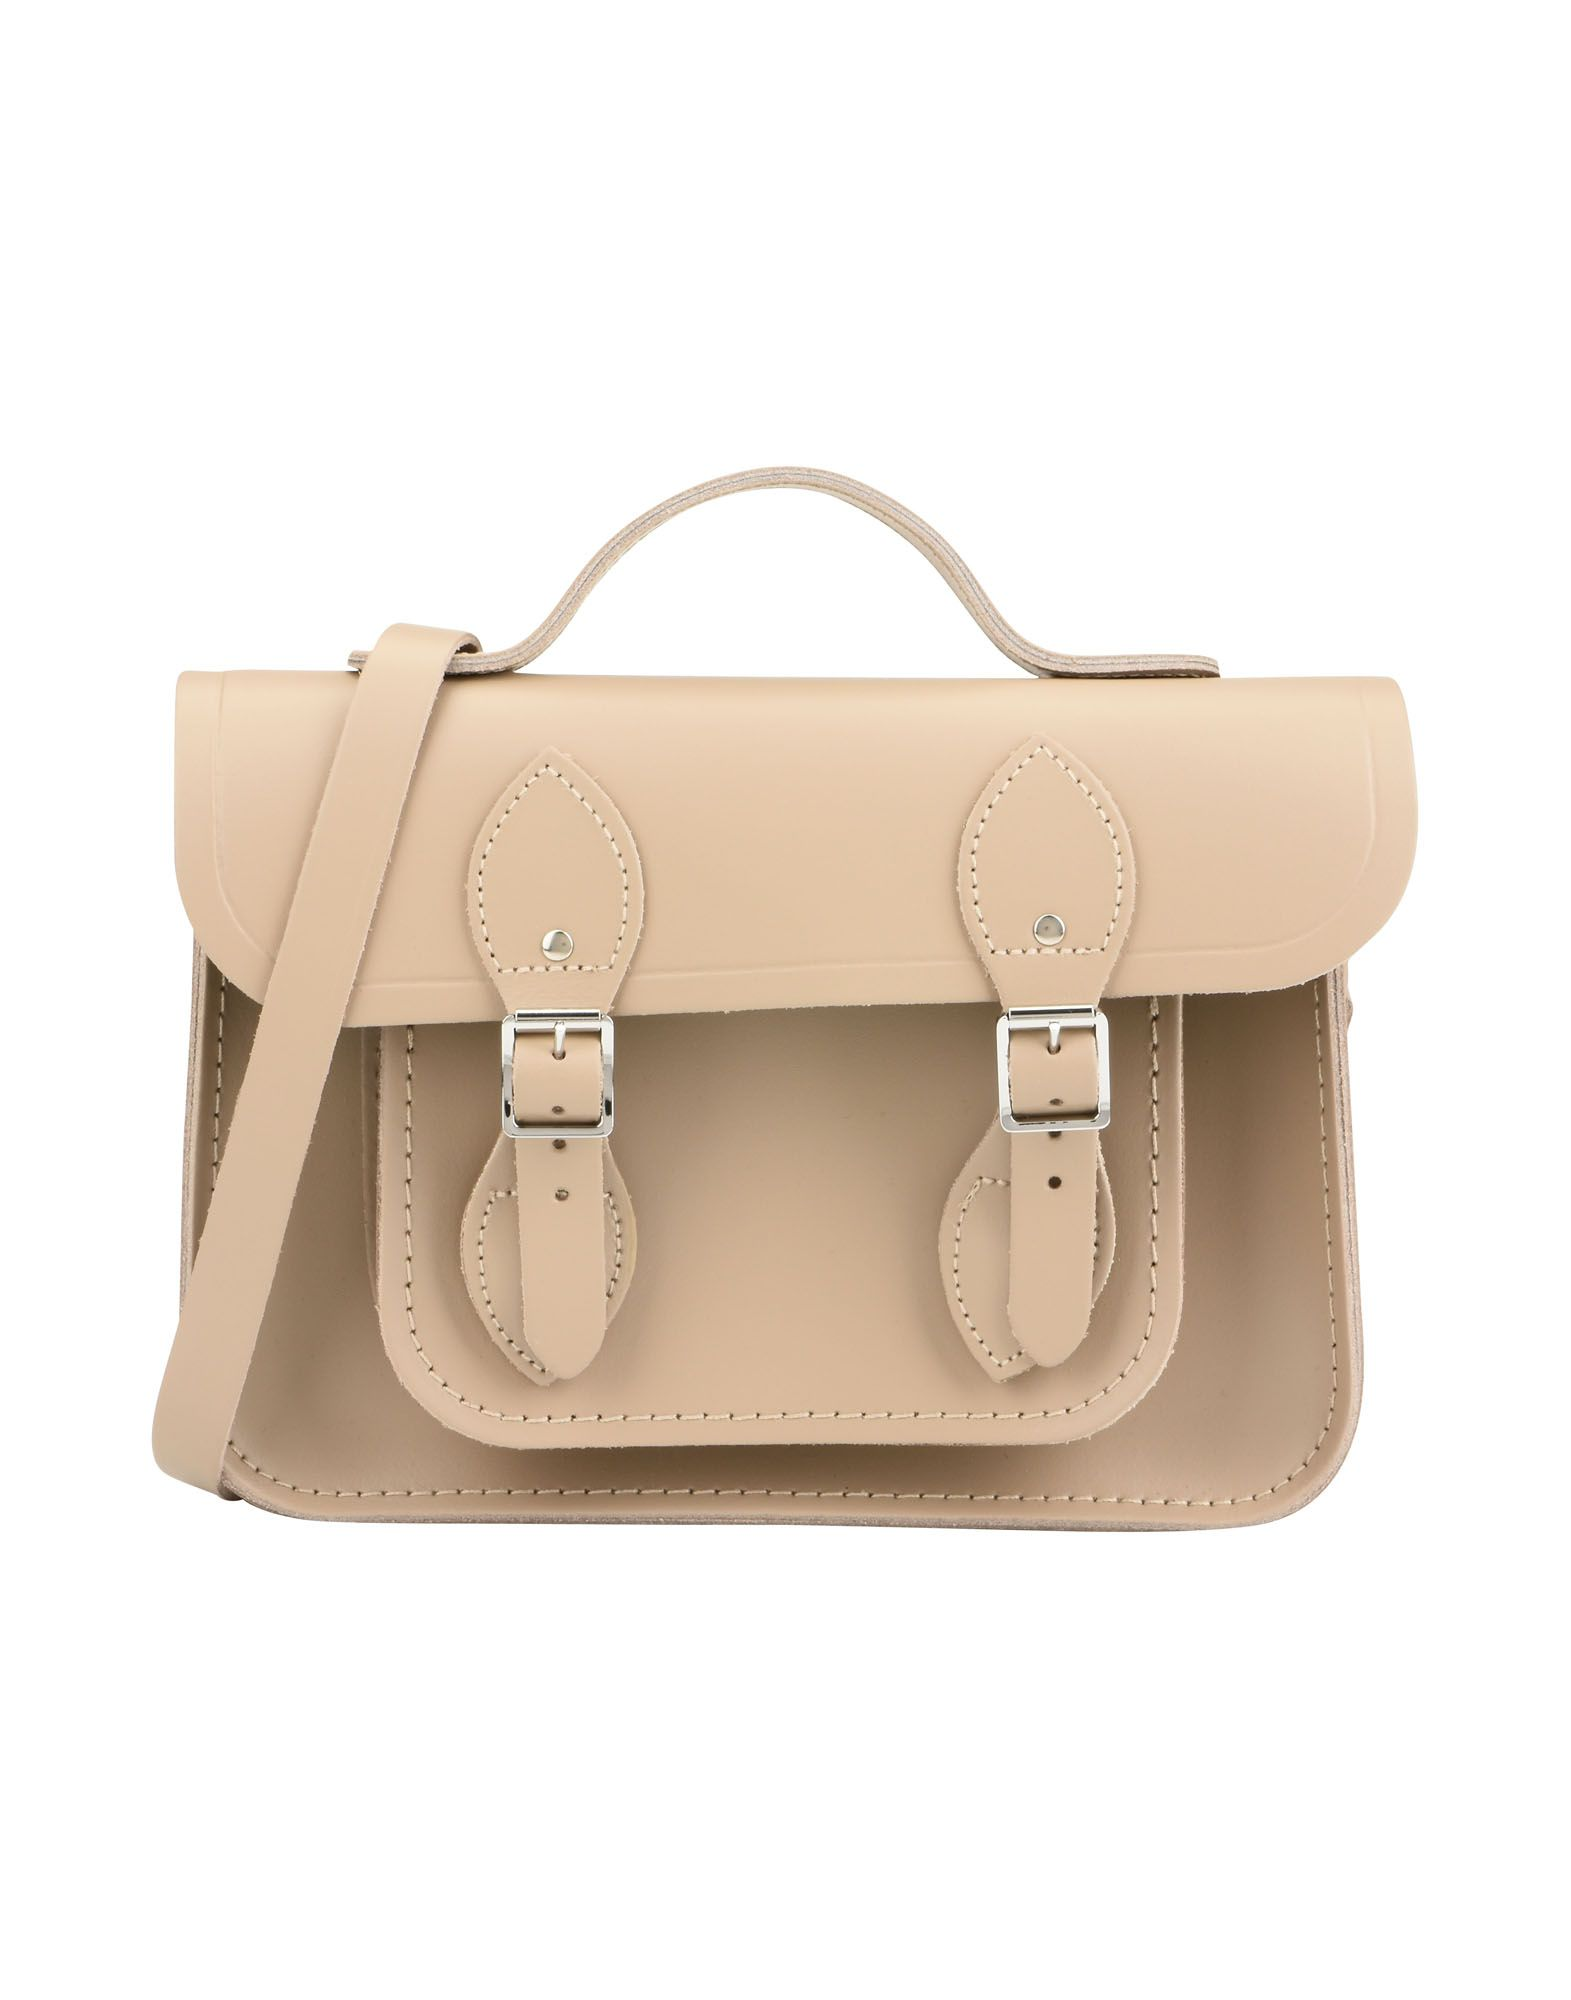 Magnetic A su online Cambridge The Company Donna Mano Borsa Batchel 11 Acquista Satchel 0dCxq7Z